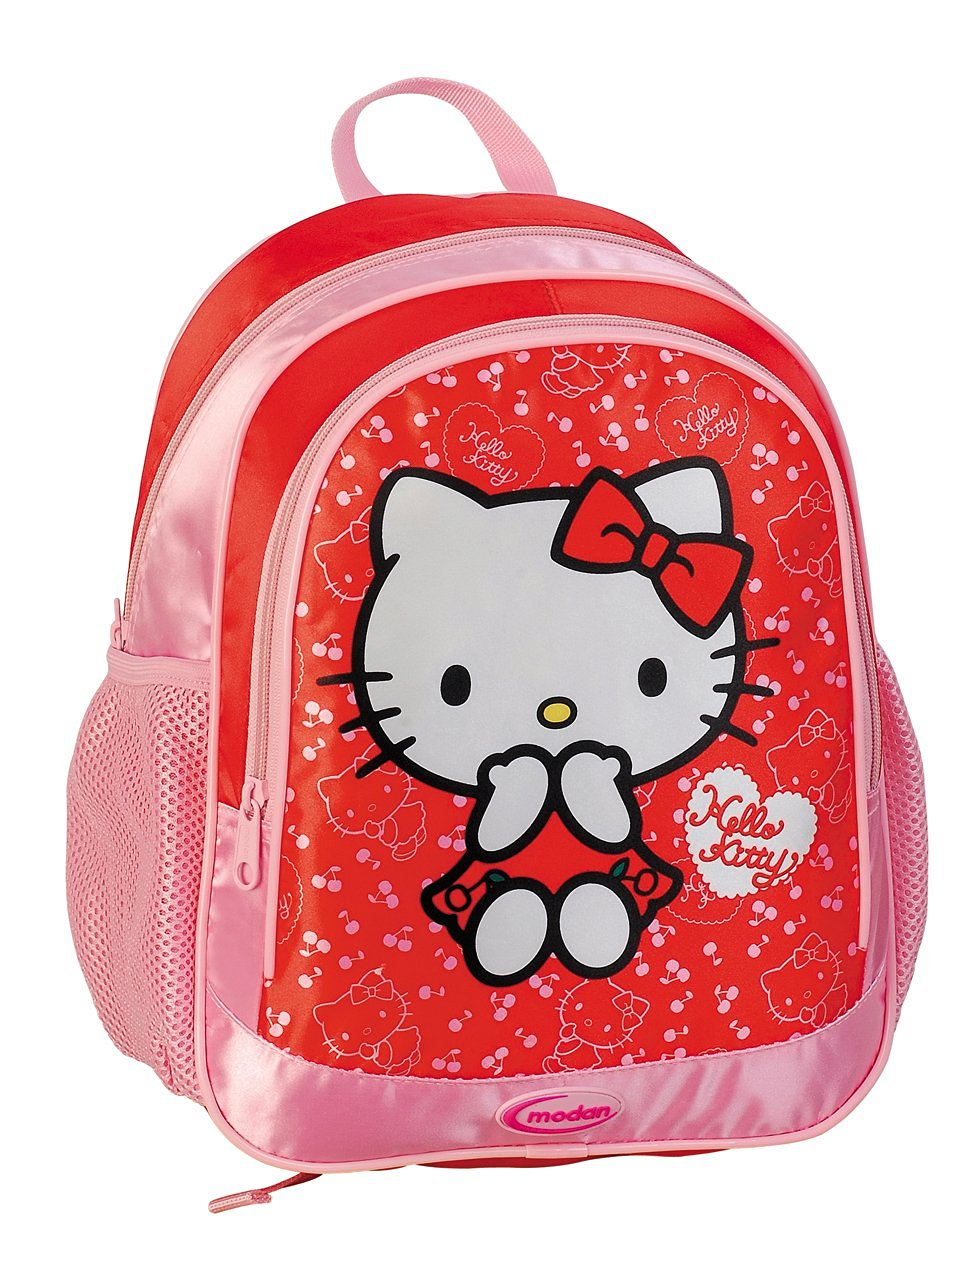 """Super"" Sac à Dos Hello Kitty, Sac à Dos pas cher"